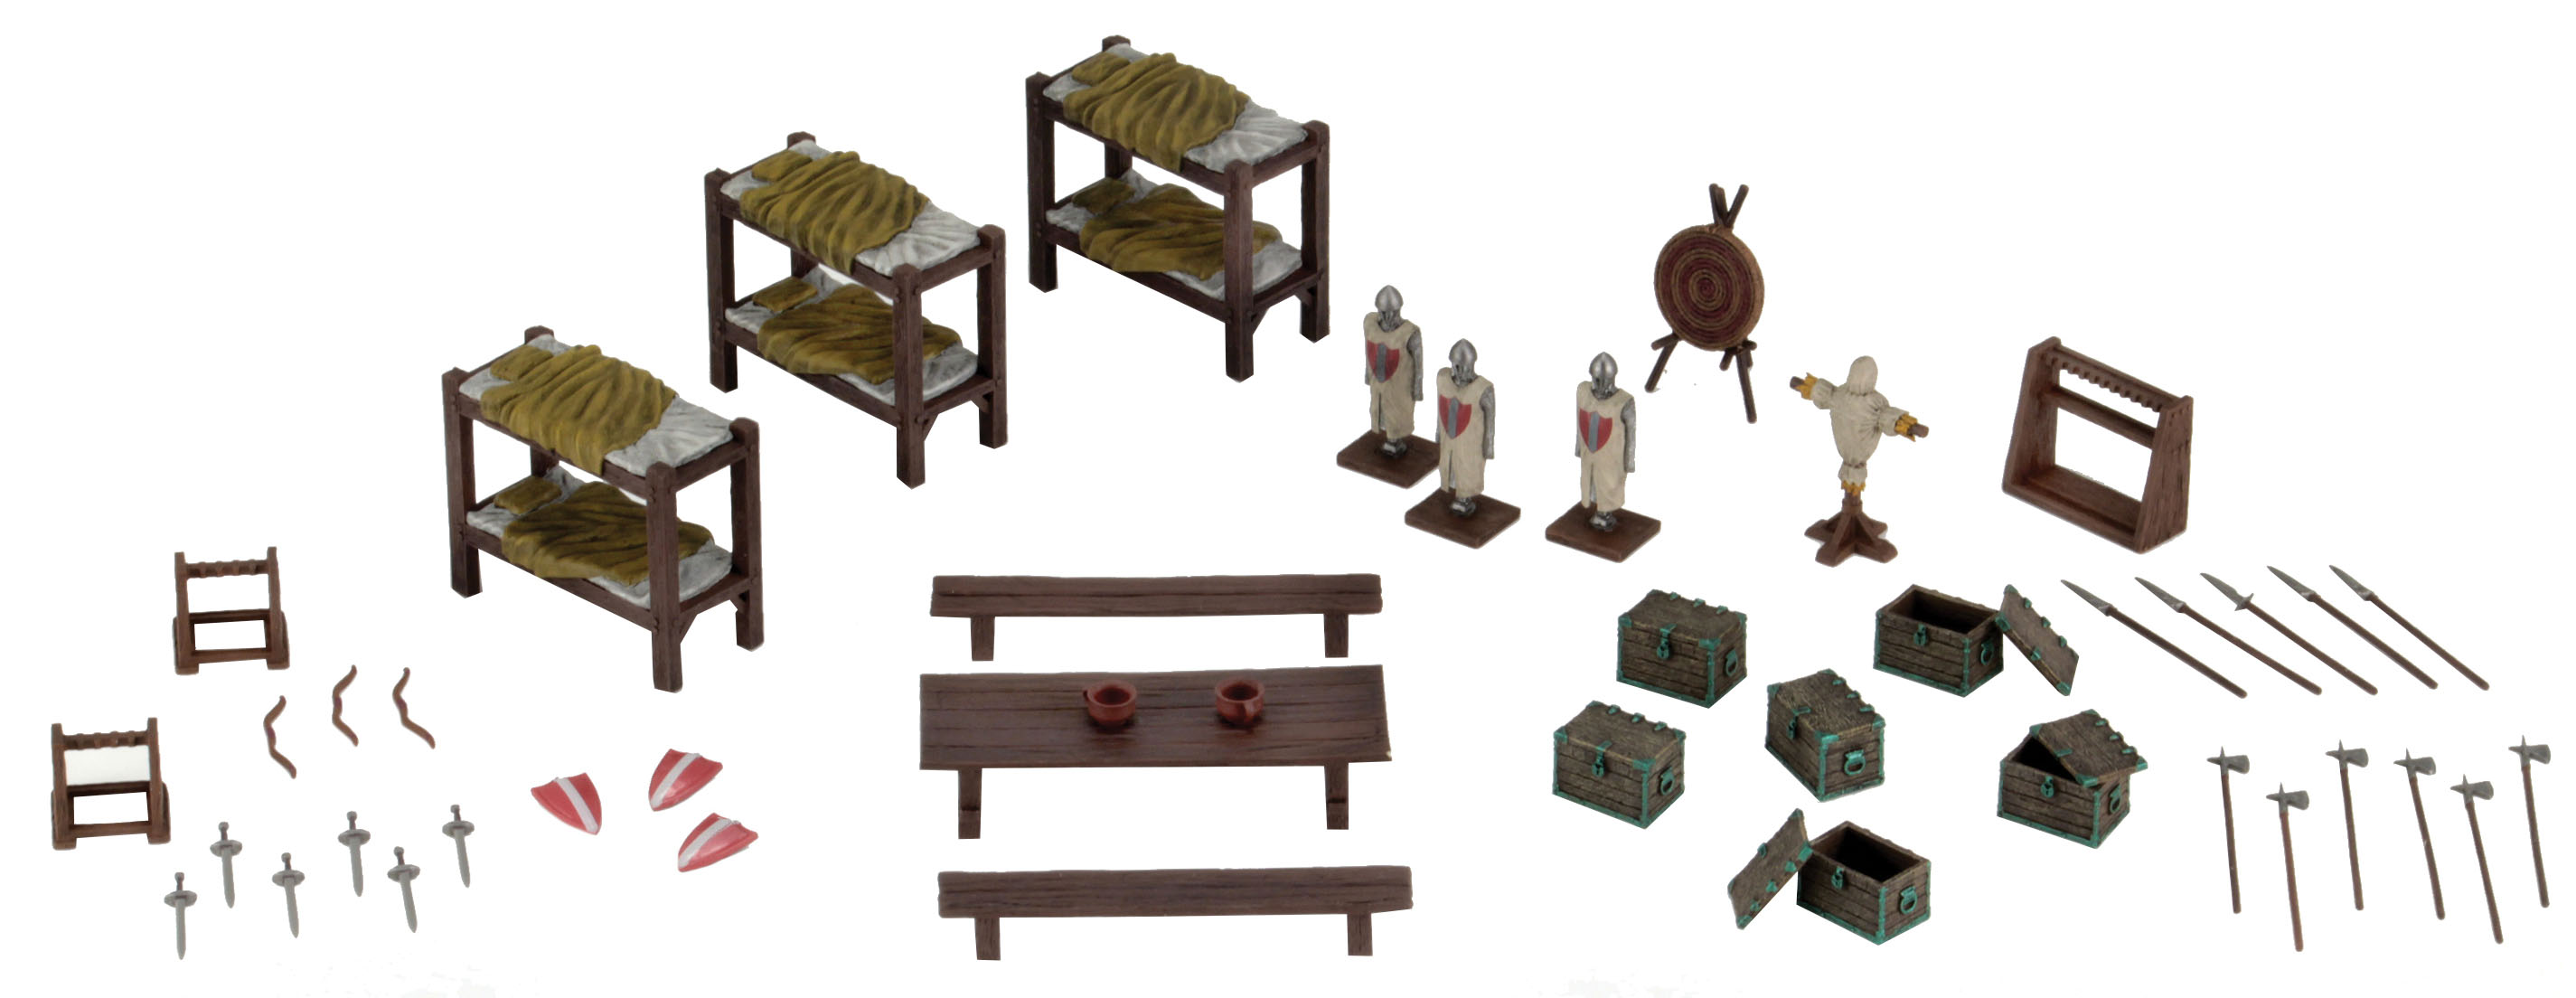 Wizkids-4D-Settings-Castle-Barracks-Painted-Miniatures-Scenery-Set-WZK73923 miniature 2